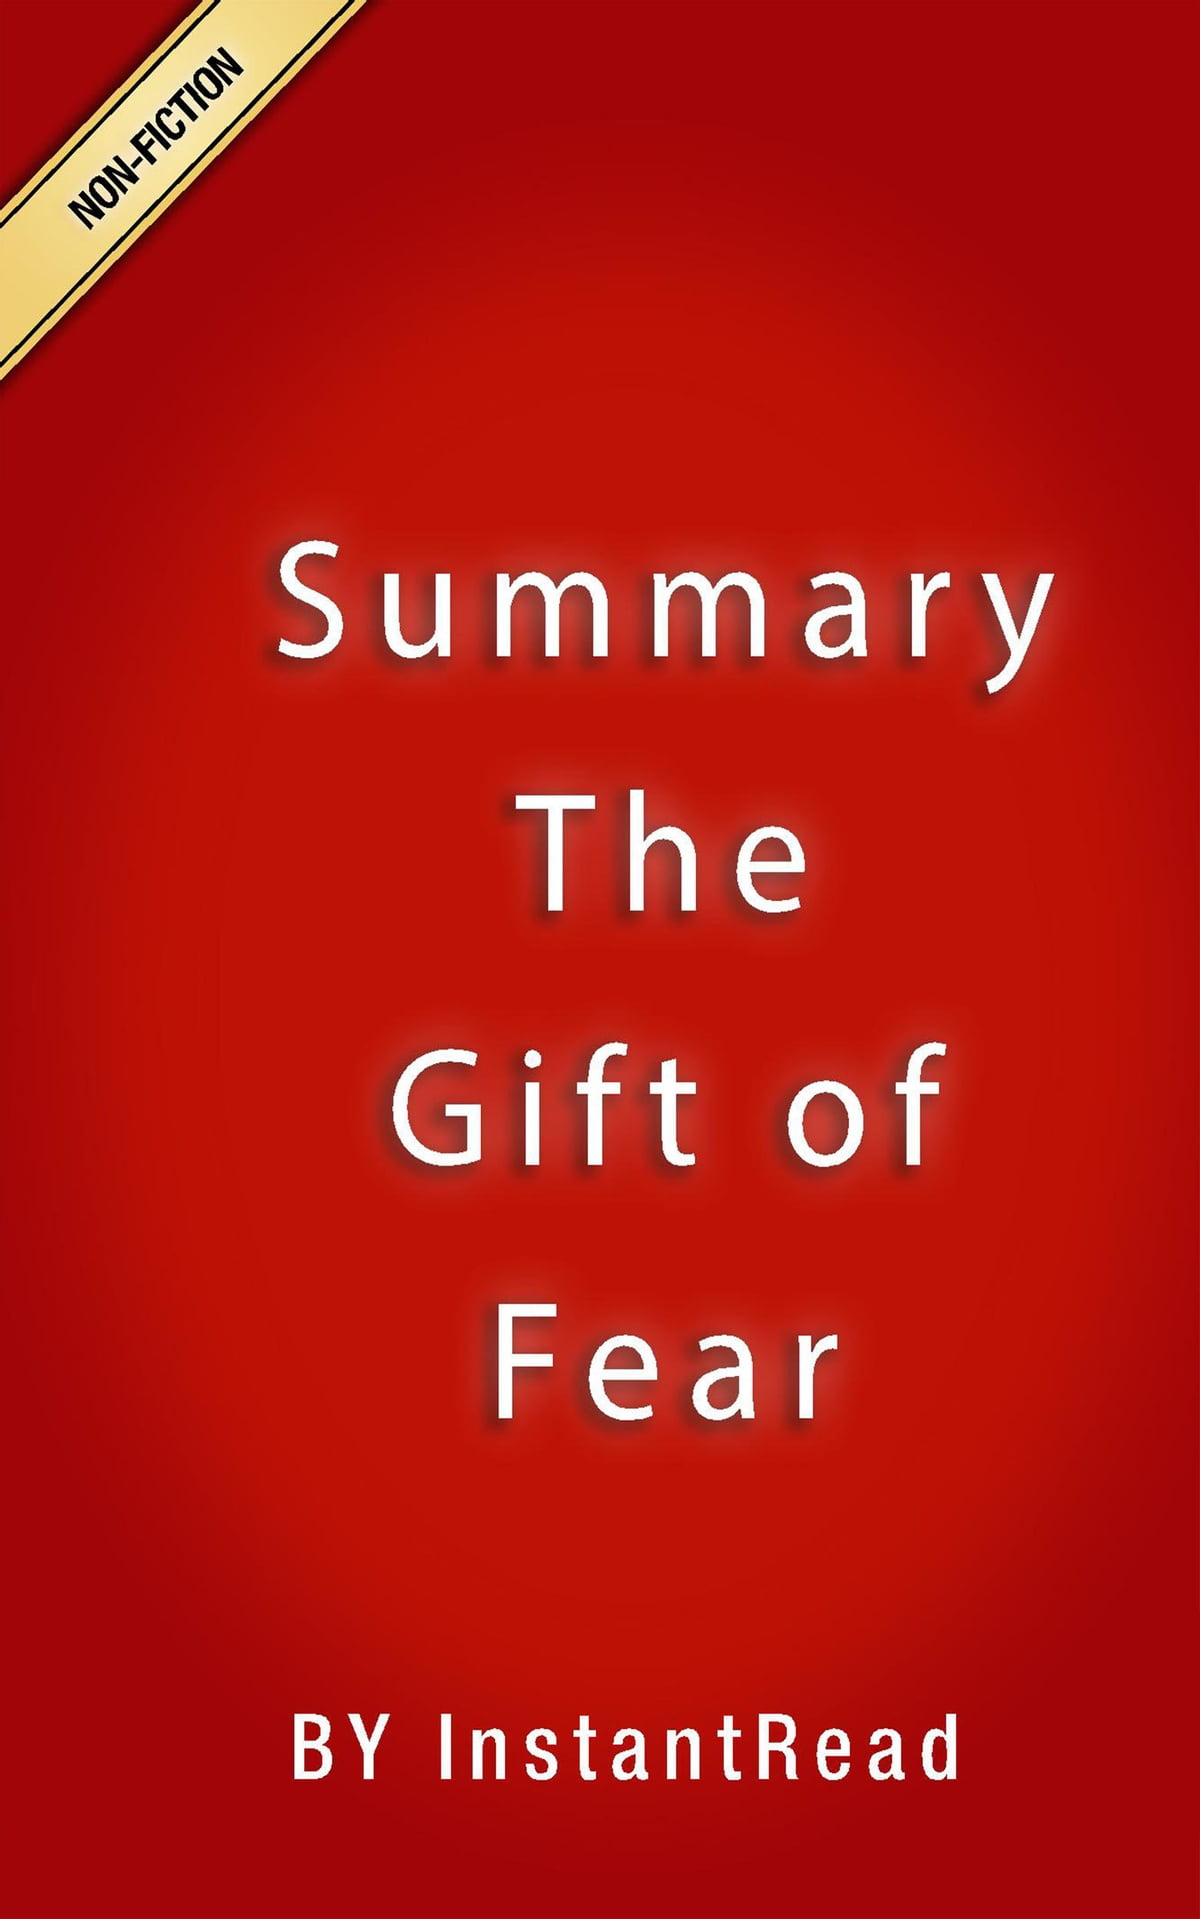 De becker fear gavin the pdf of gift